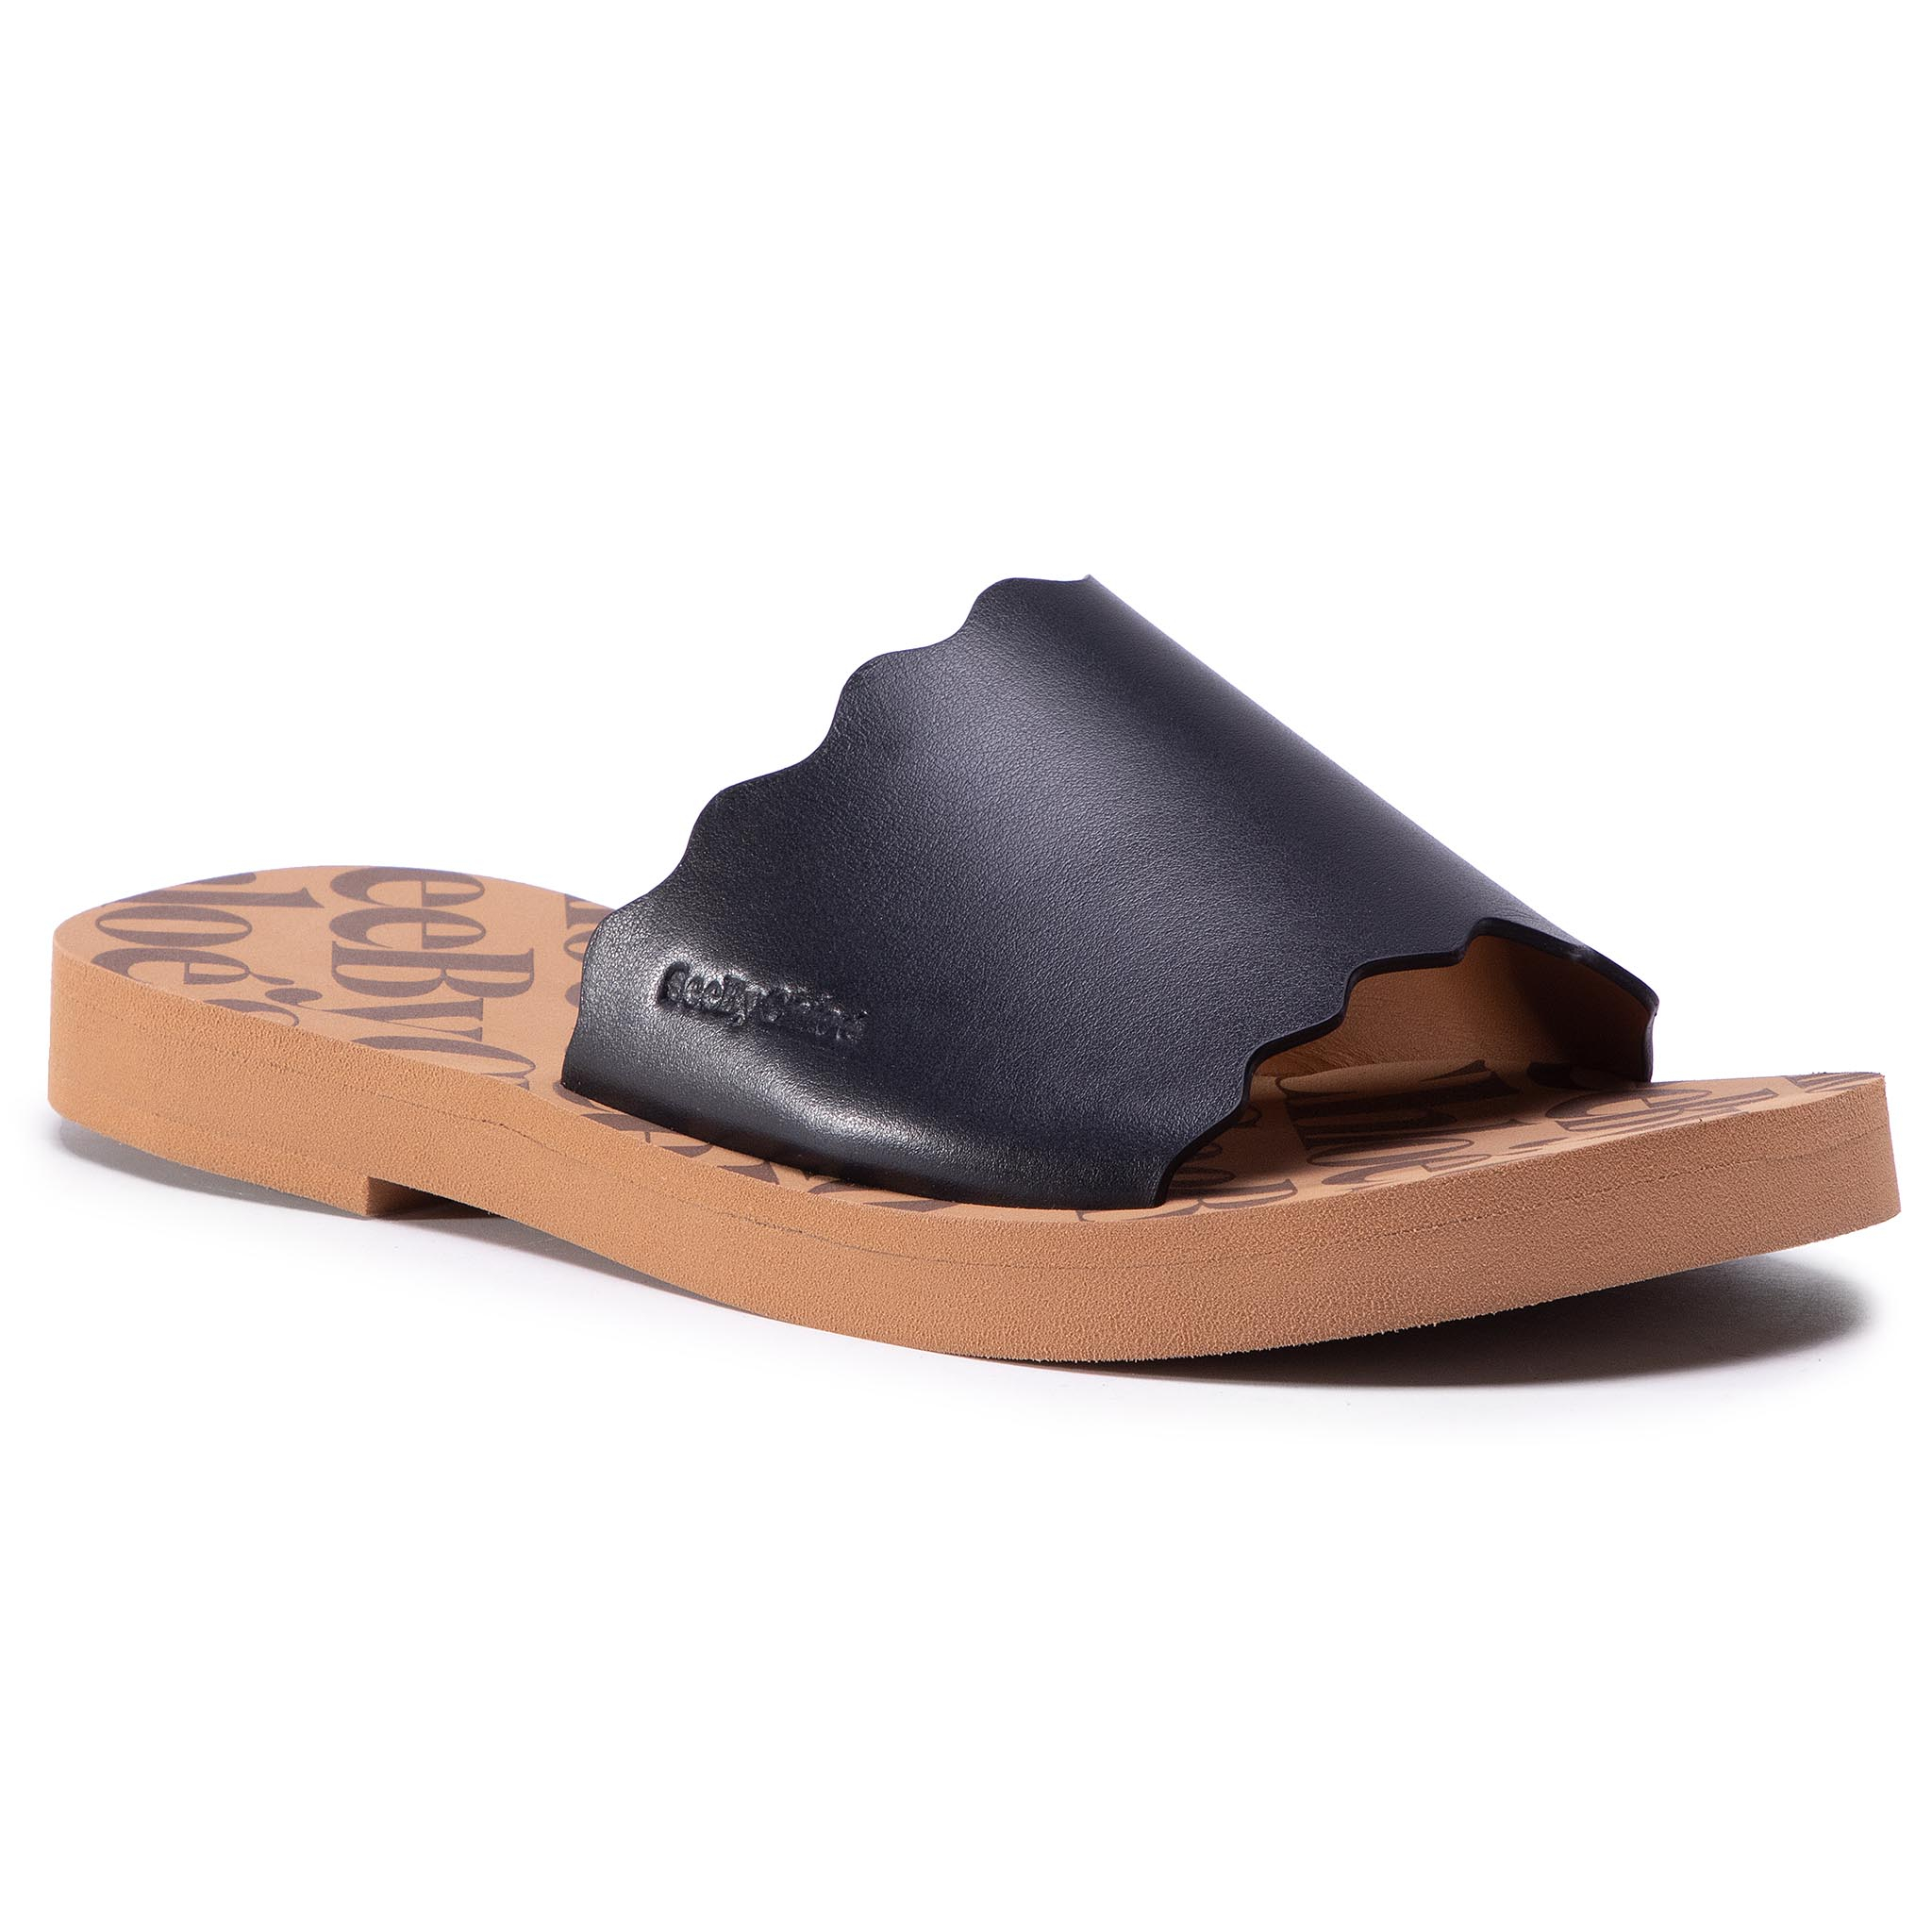 Image of Ciabatte SEE BY CHLOÉ - SB35180A Black/Light Brown 990